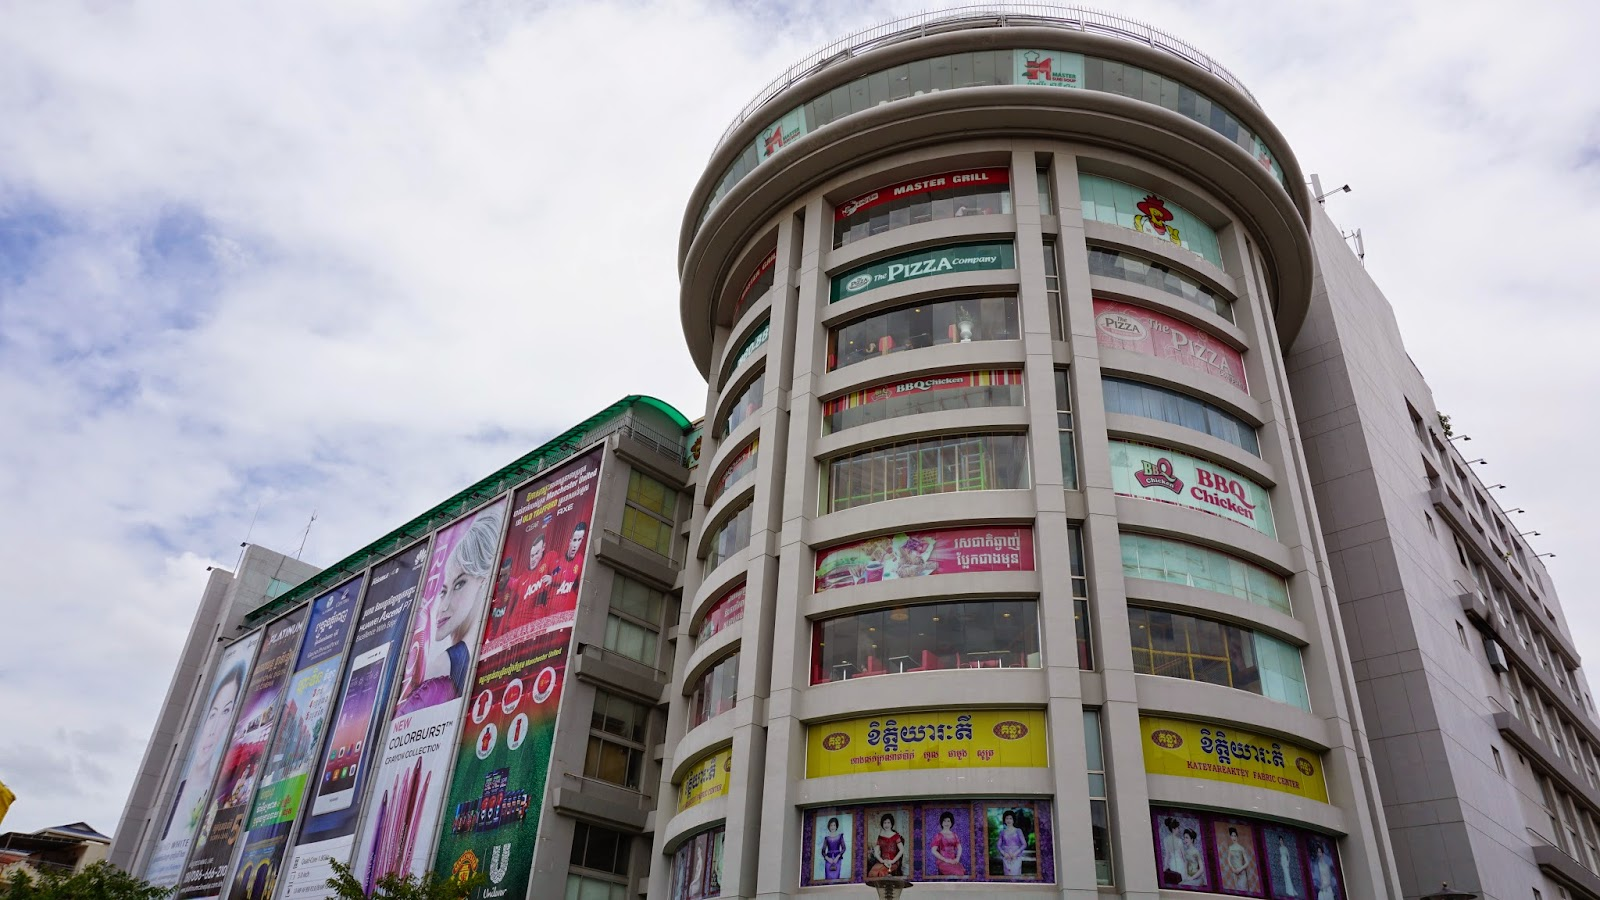 Sorya shopping centre is located just opposite the Central Market